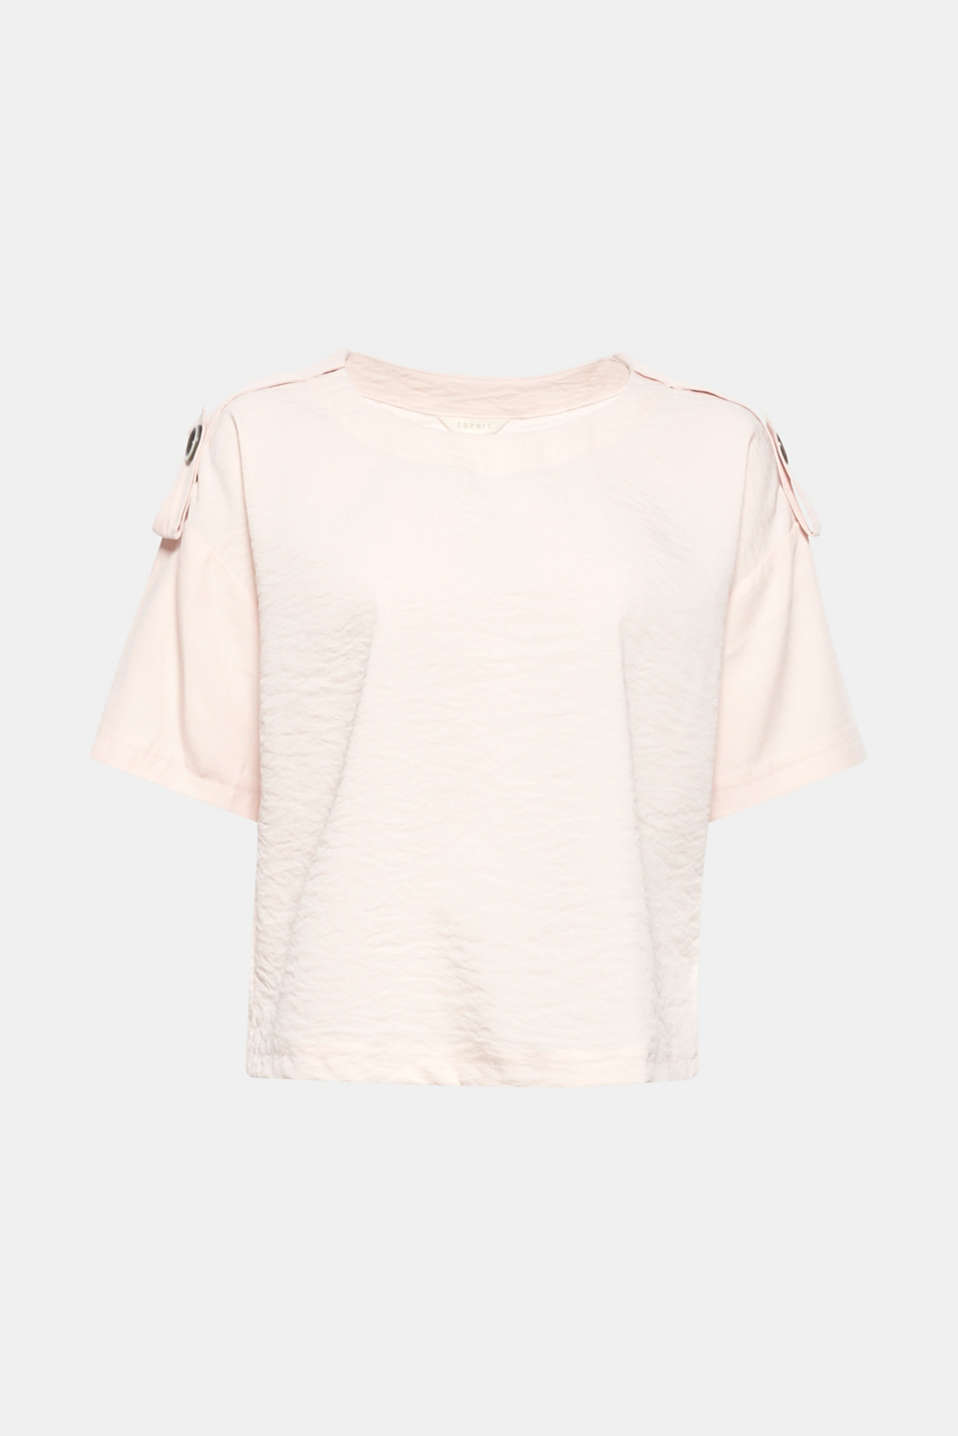 Casual, stylish, boxy! This blouse comes in an on-trend short boxy cut and features eye-catching epaulettes.